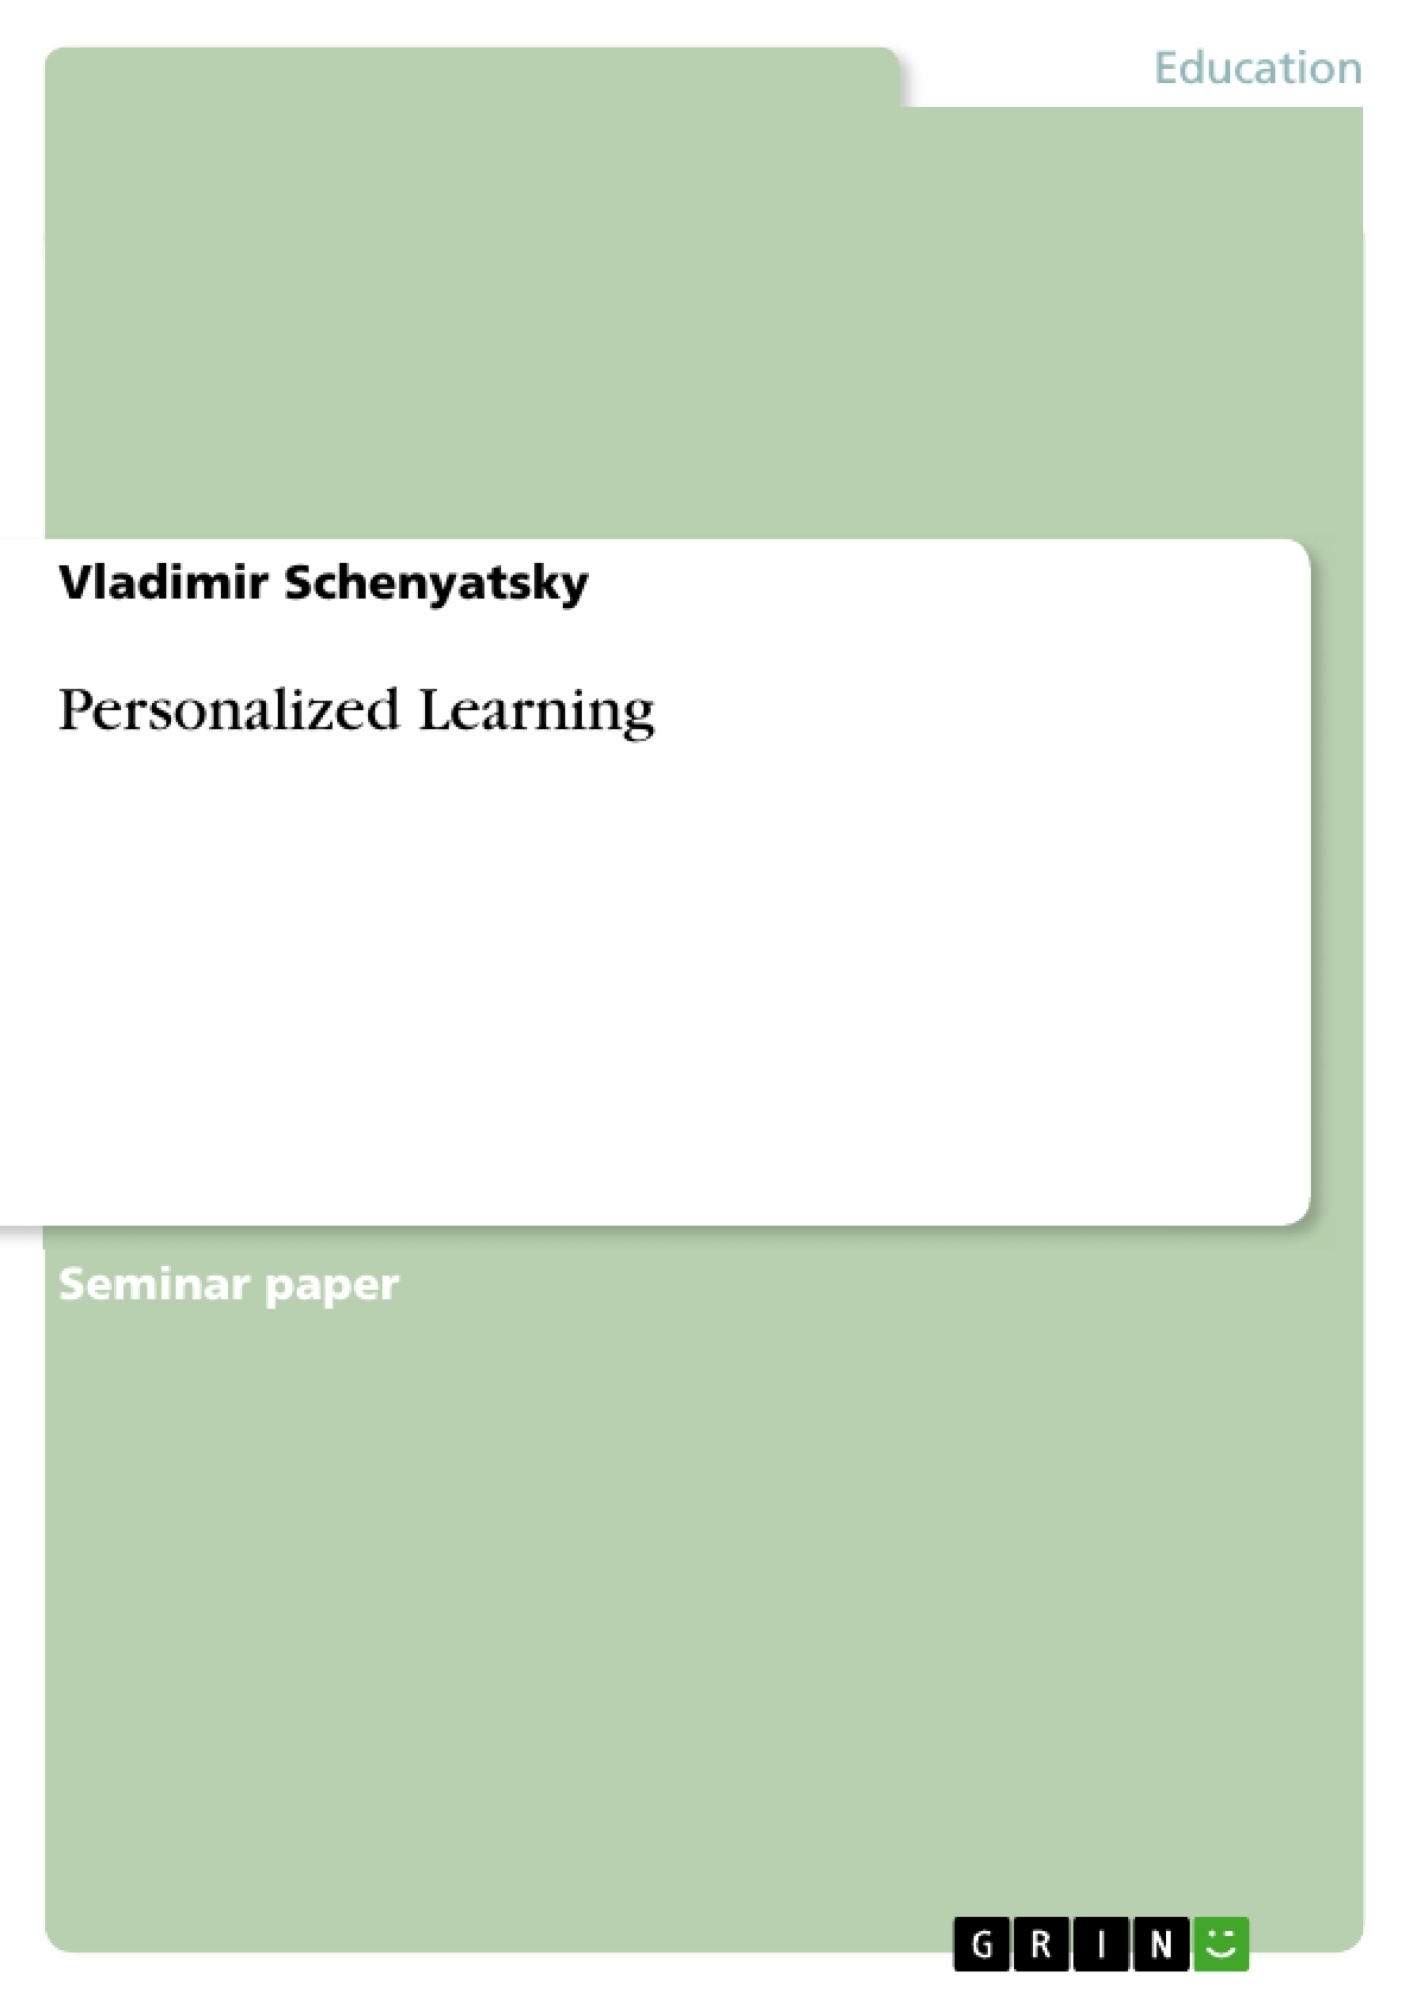 bachelor thesis e-learning